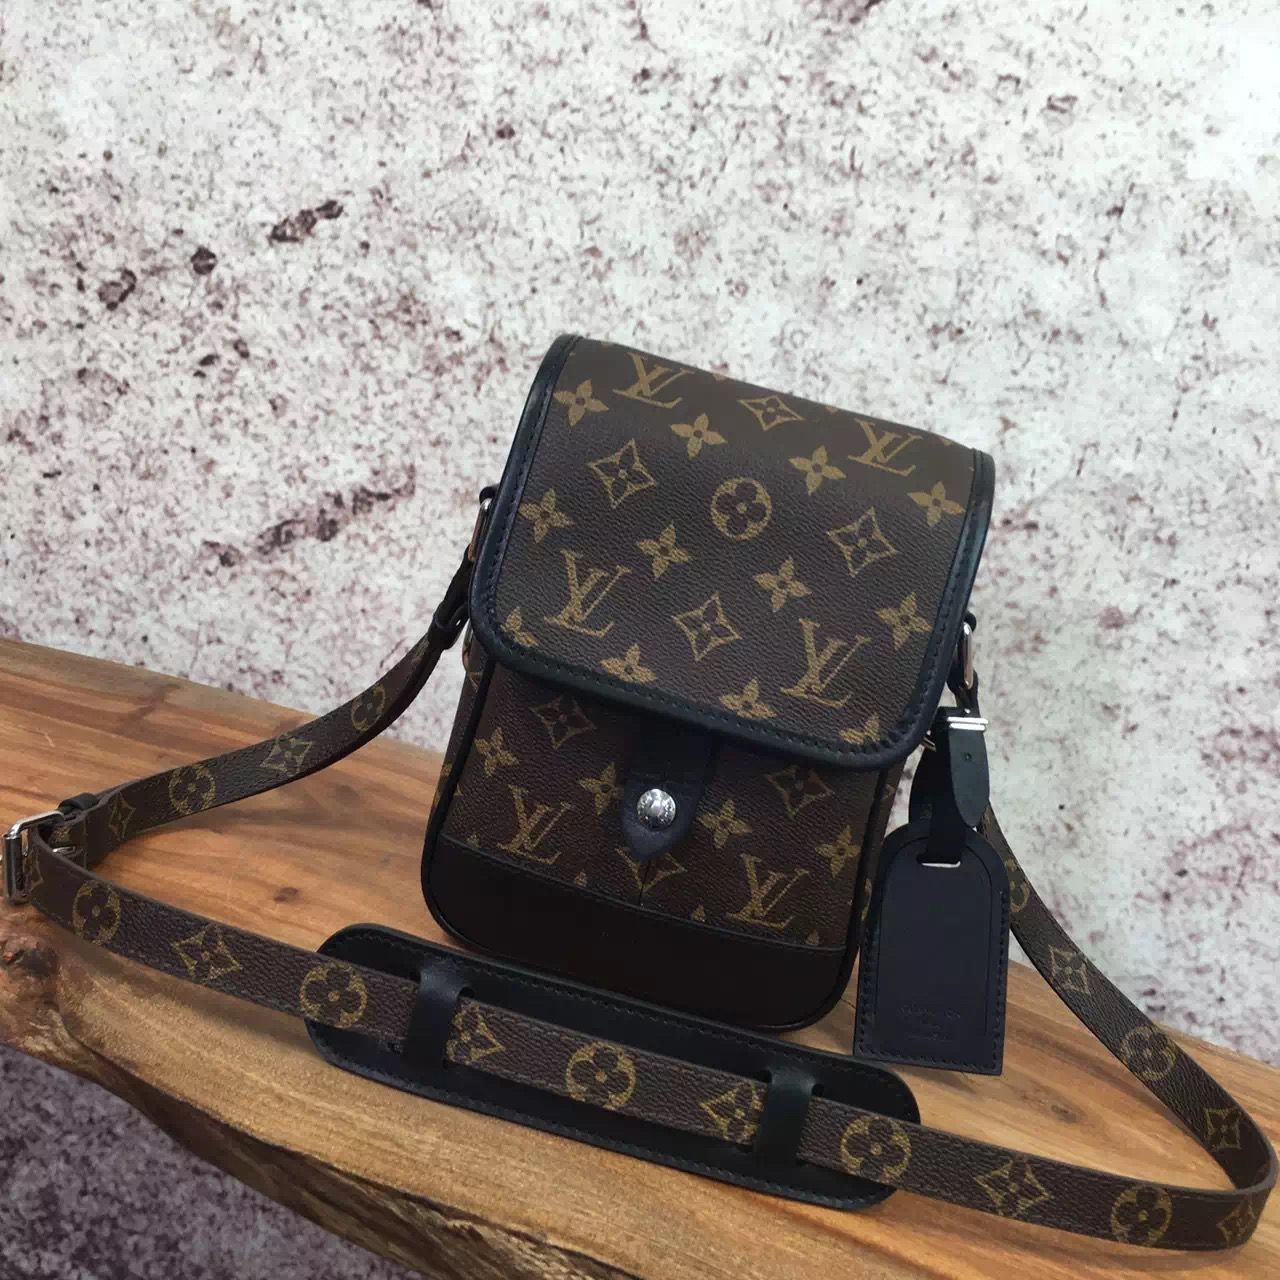 c3e0901b1e18 Louis Vuitton Monogram Canvas Men s Mini Messenger Bag Spring 2017 Louis  Vuitton 2017